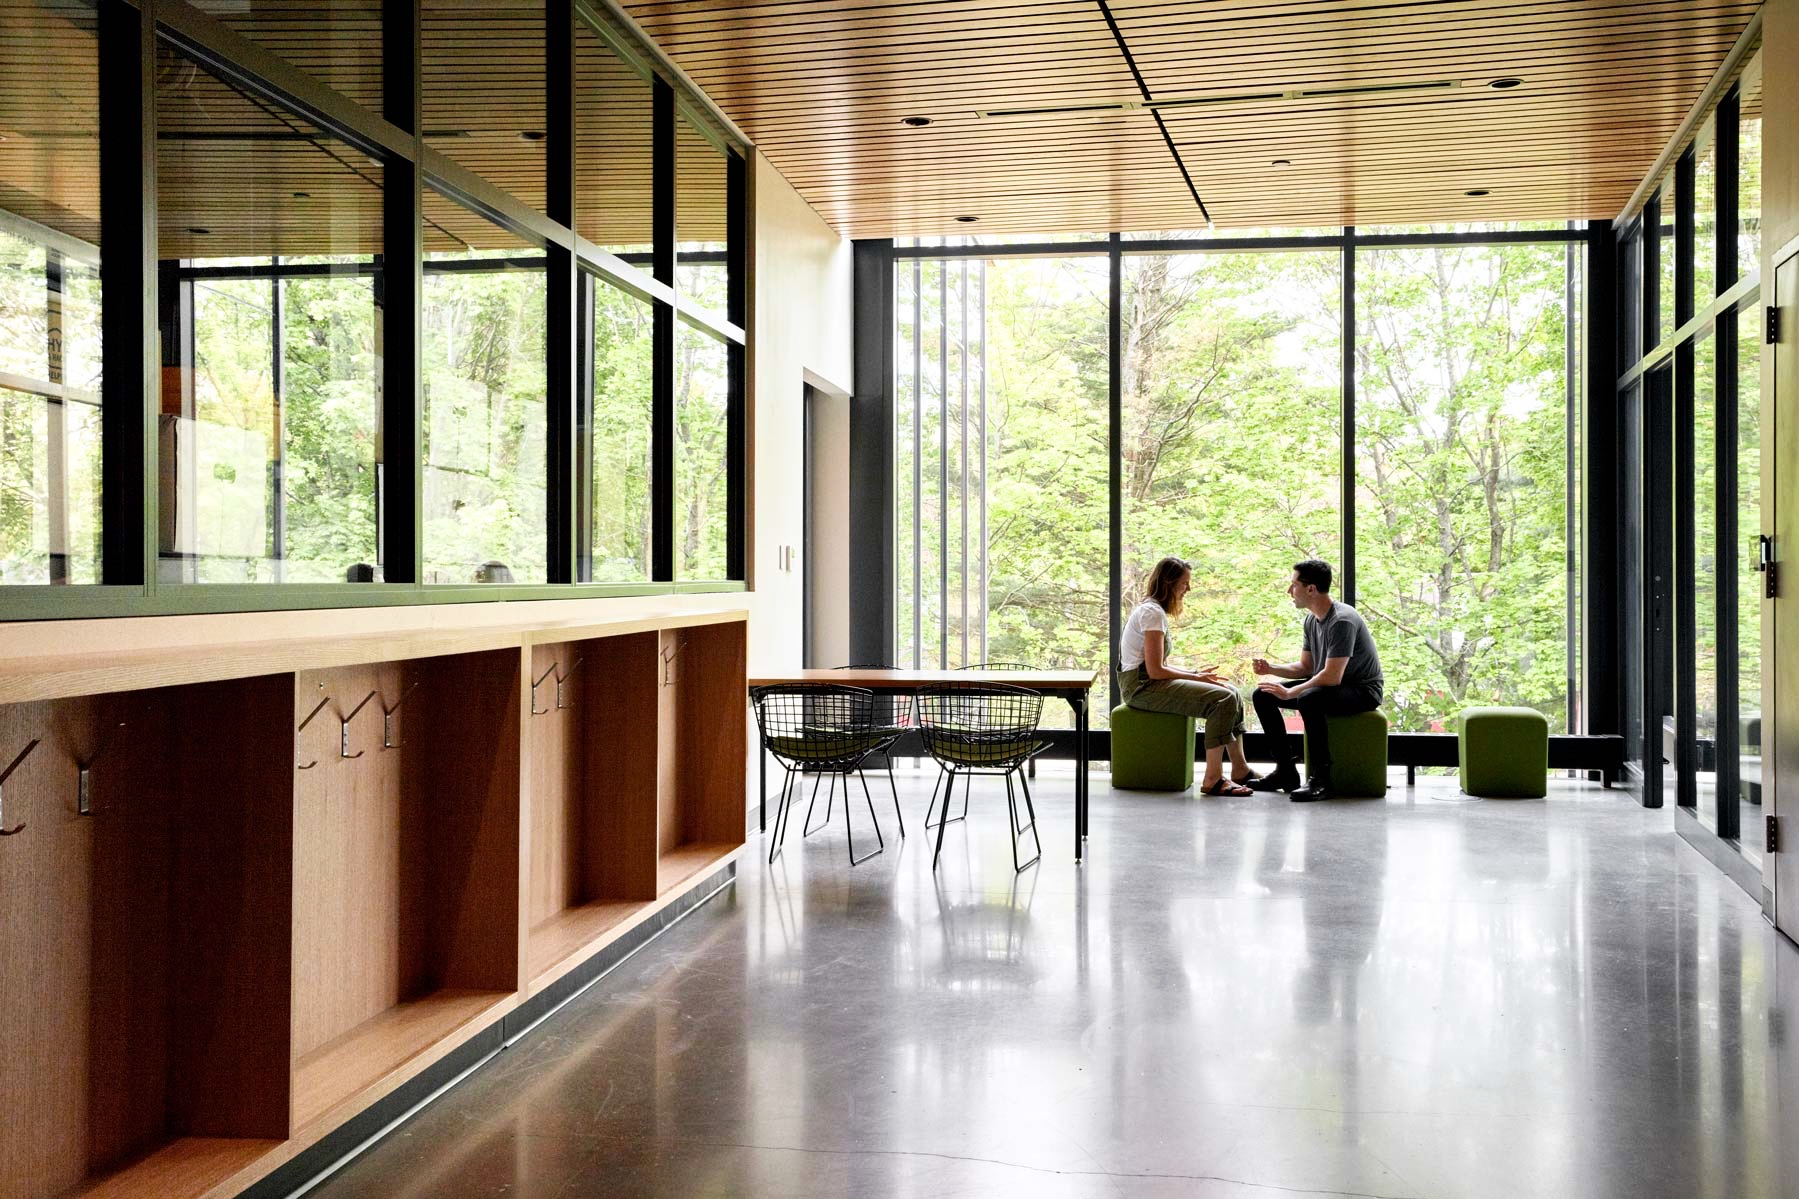 The building was positioned intentionally with windows to the south and north to capitalize on peak daylight hours. Here, a shot of the windows on the third floor shows the abundance of natural light and treetop views.